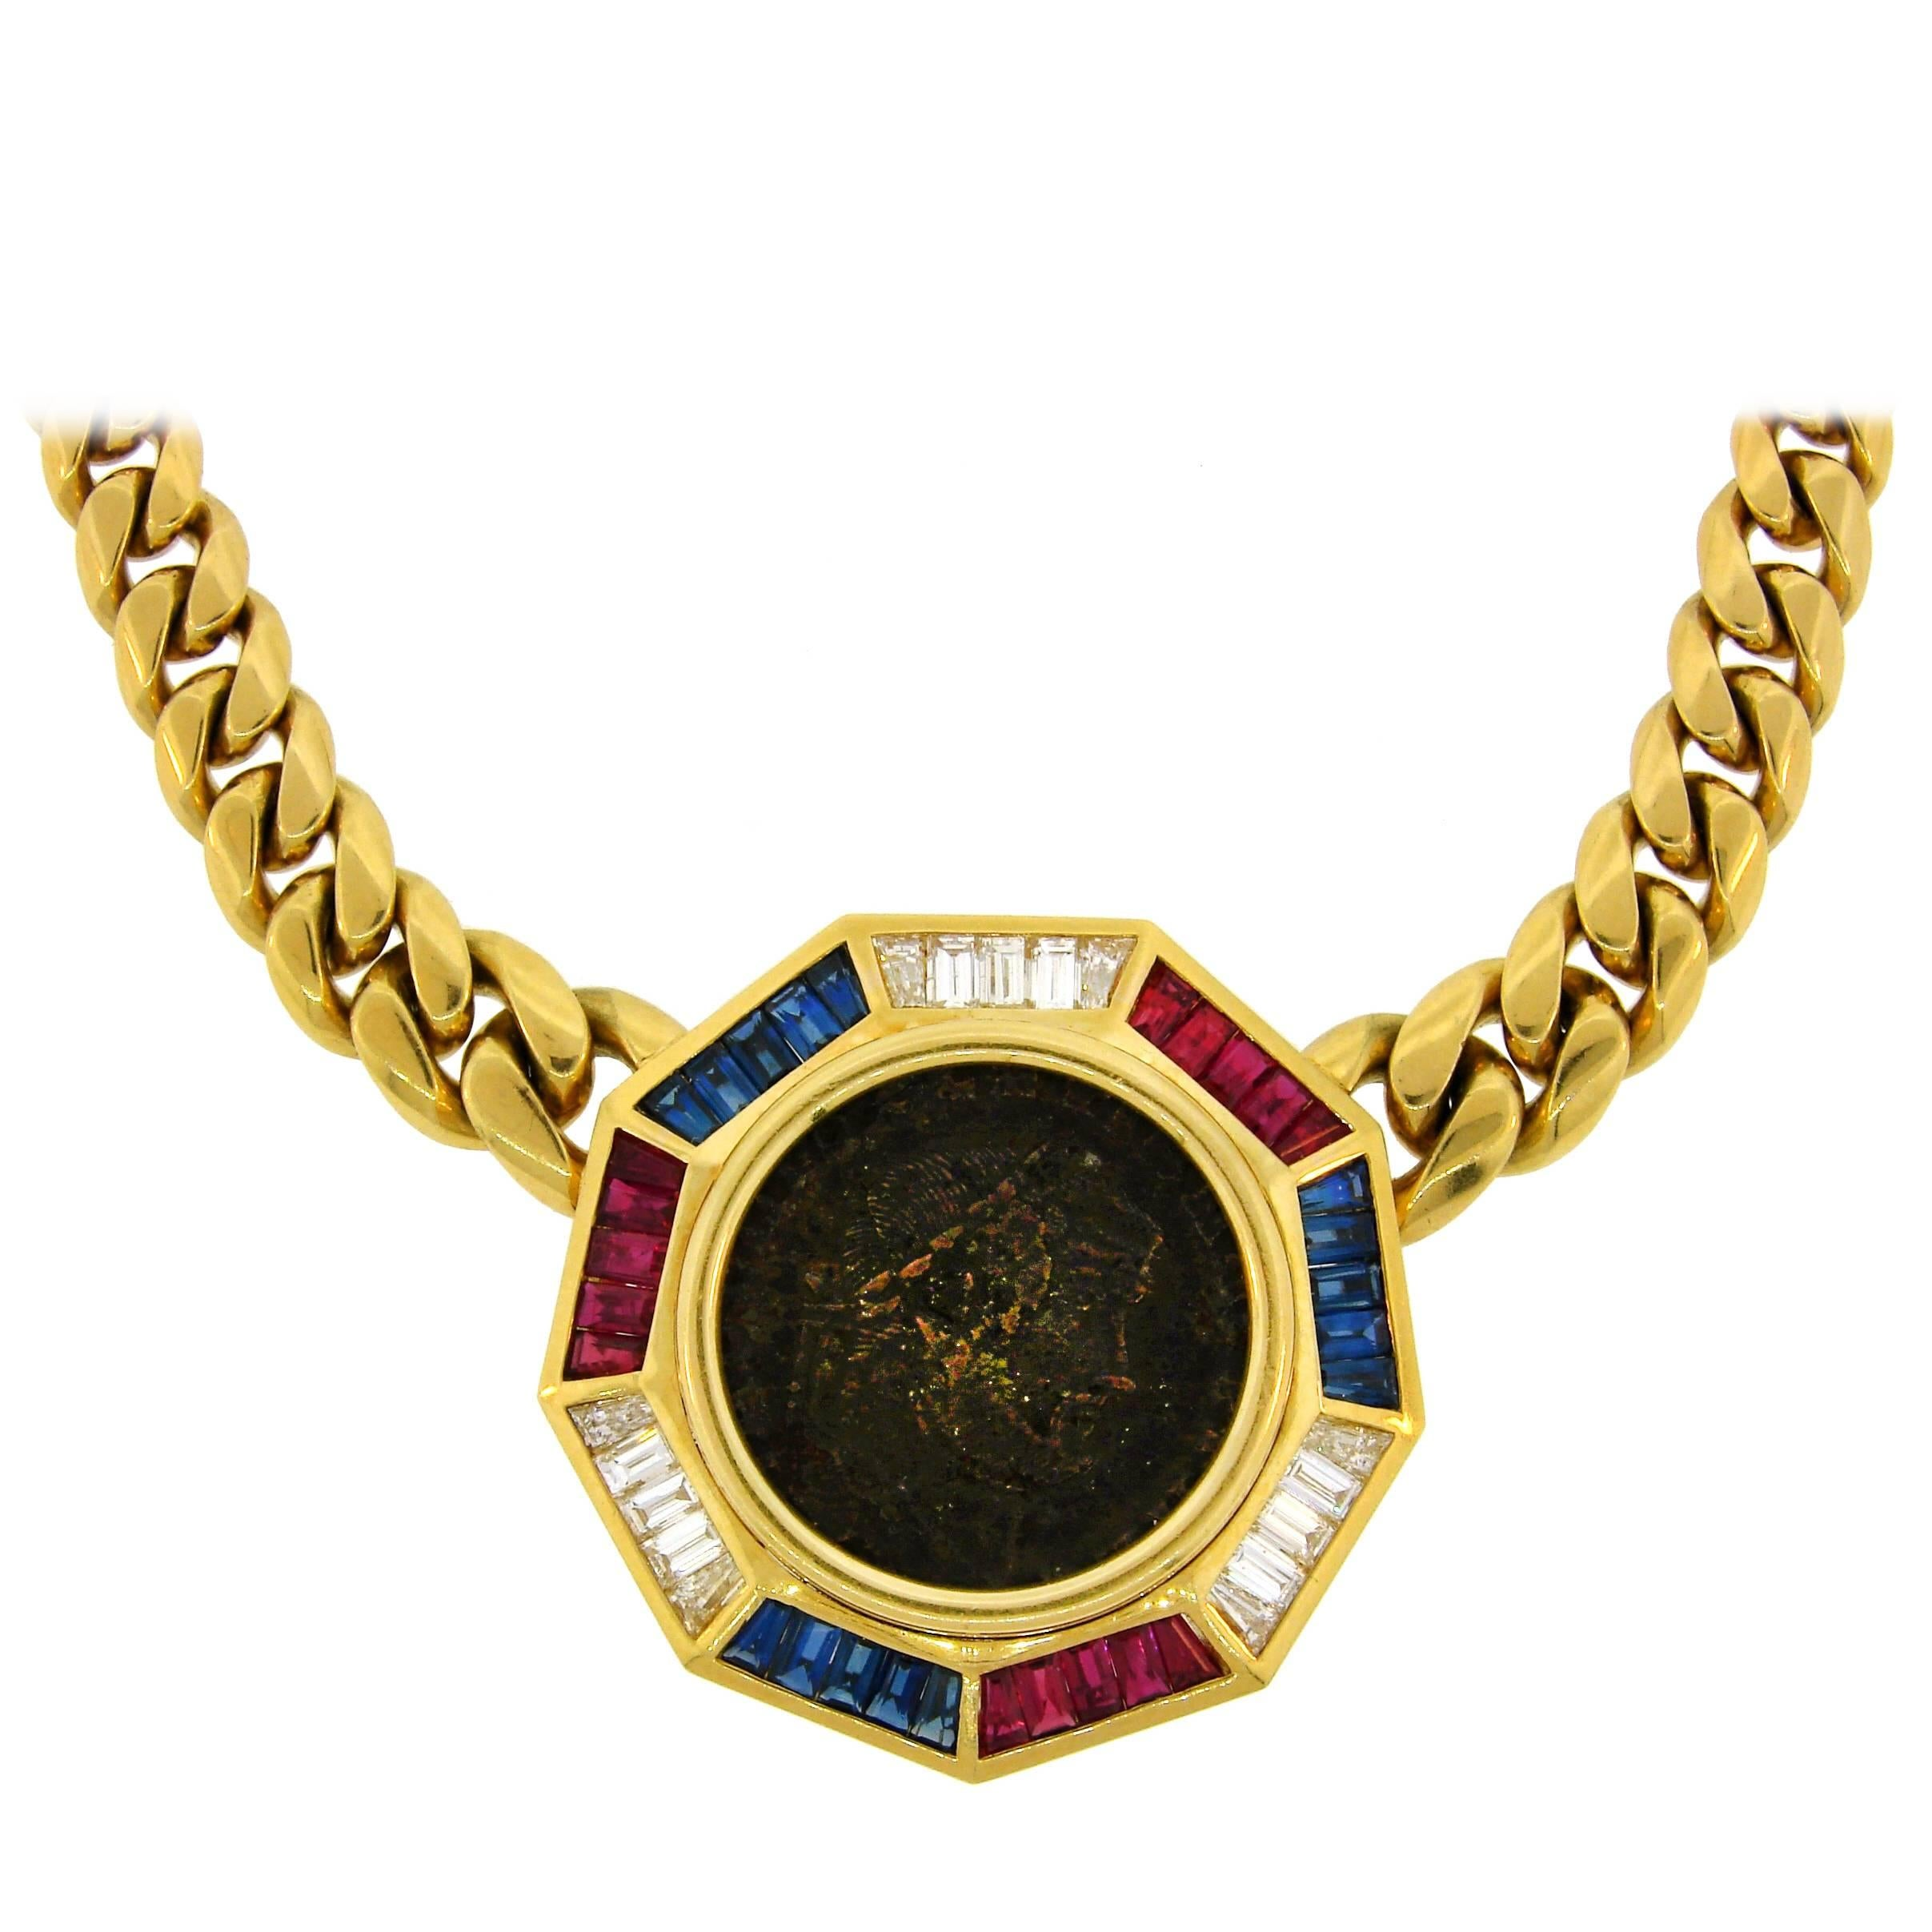 master sale for yellow jewelry pendant necklace id baptism gold sapphire diamond ruby bulgari coin necklaces j at